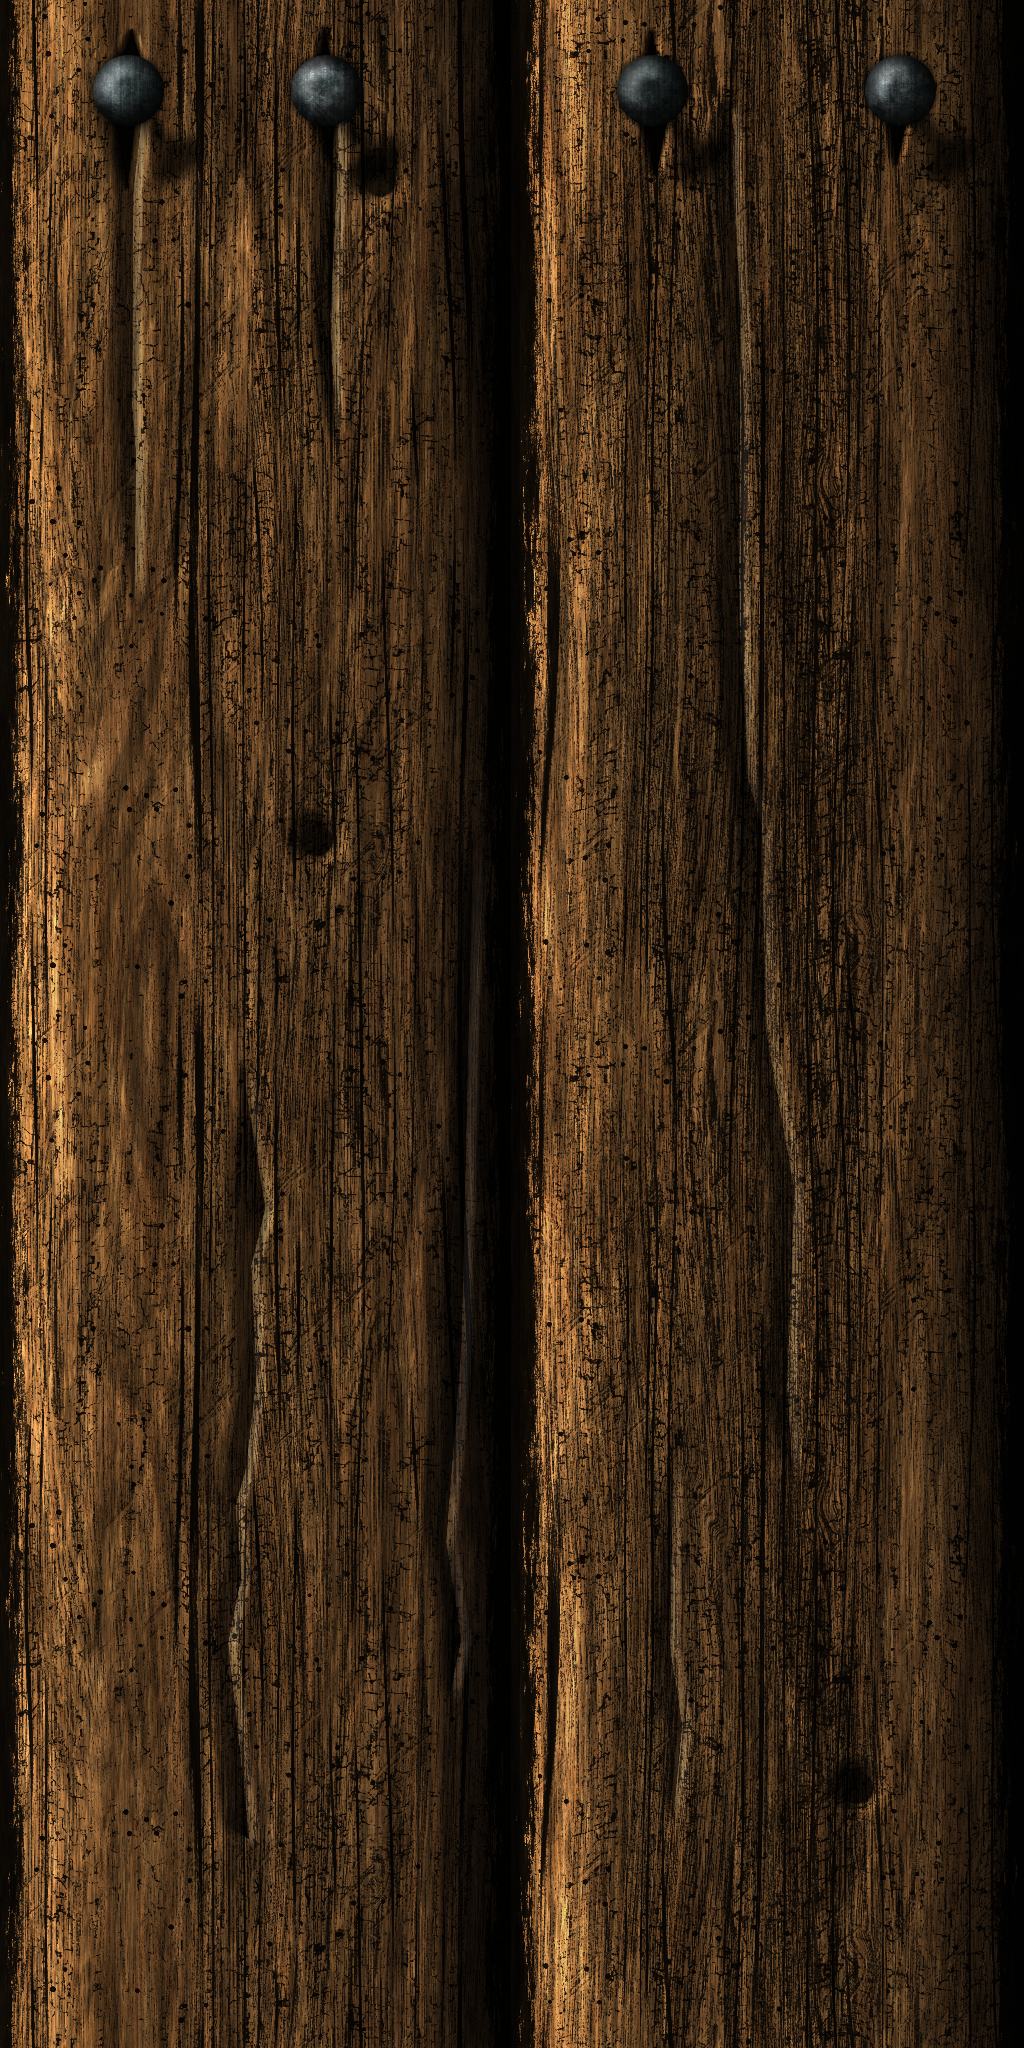 wood9_by_hoover1979-dbv3ggu.png